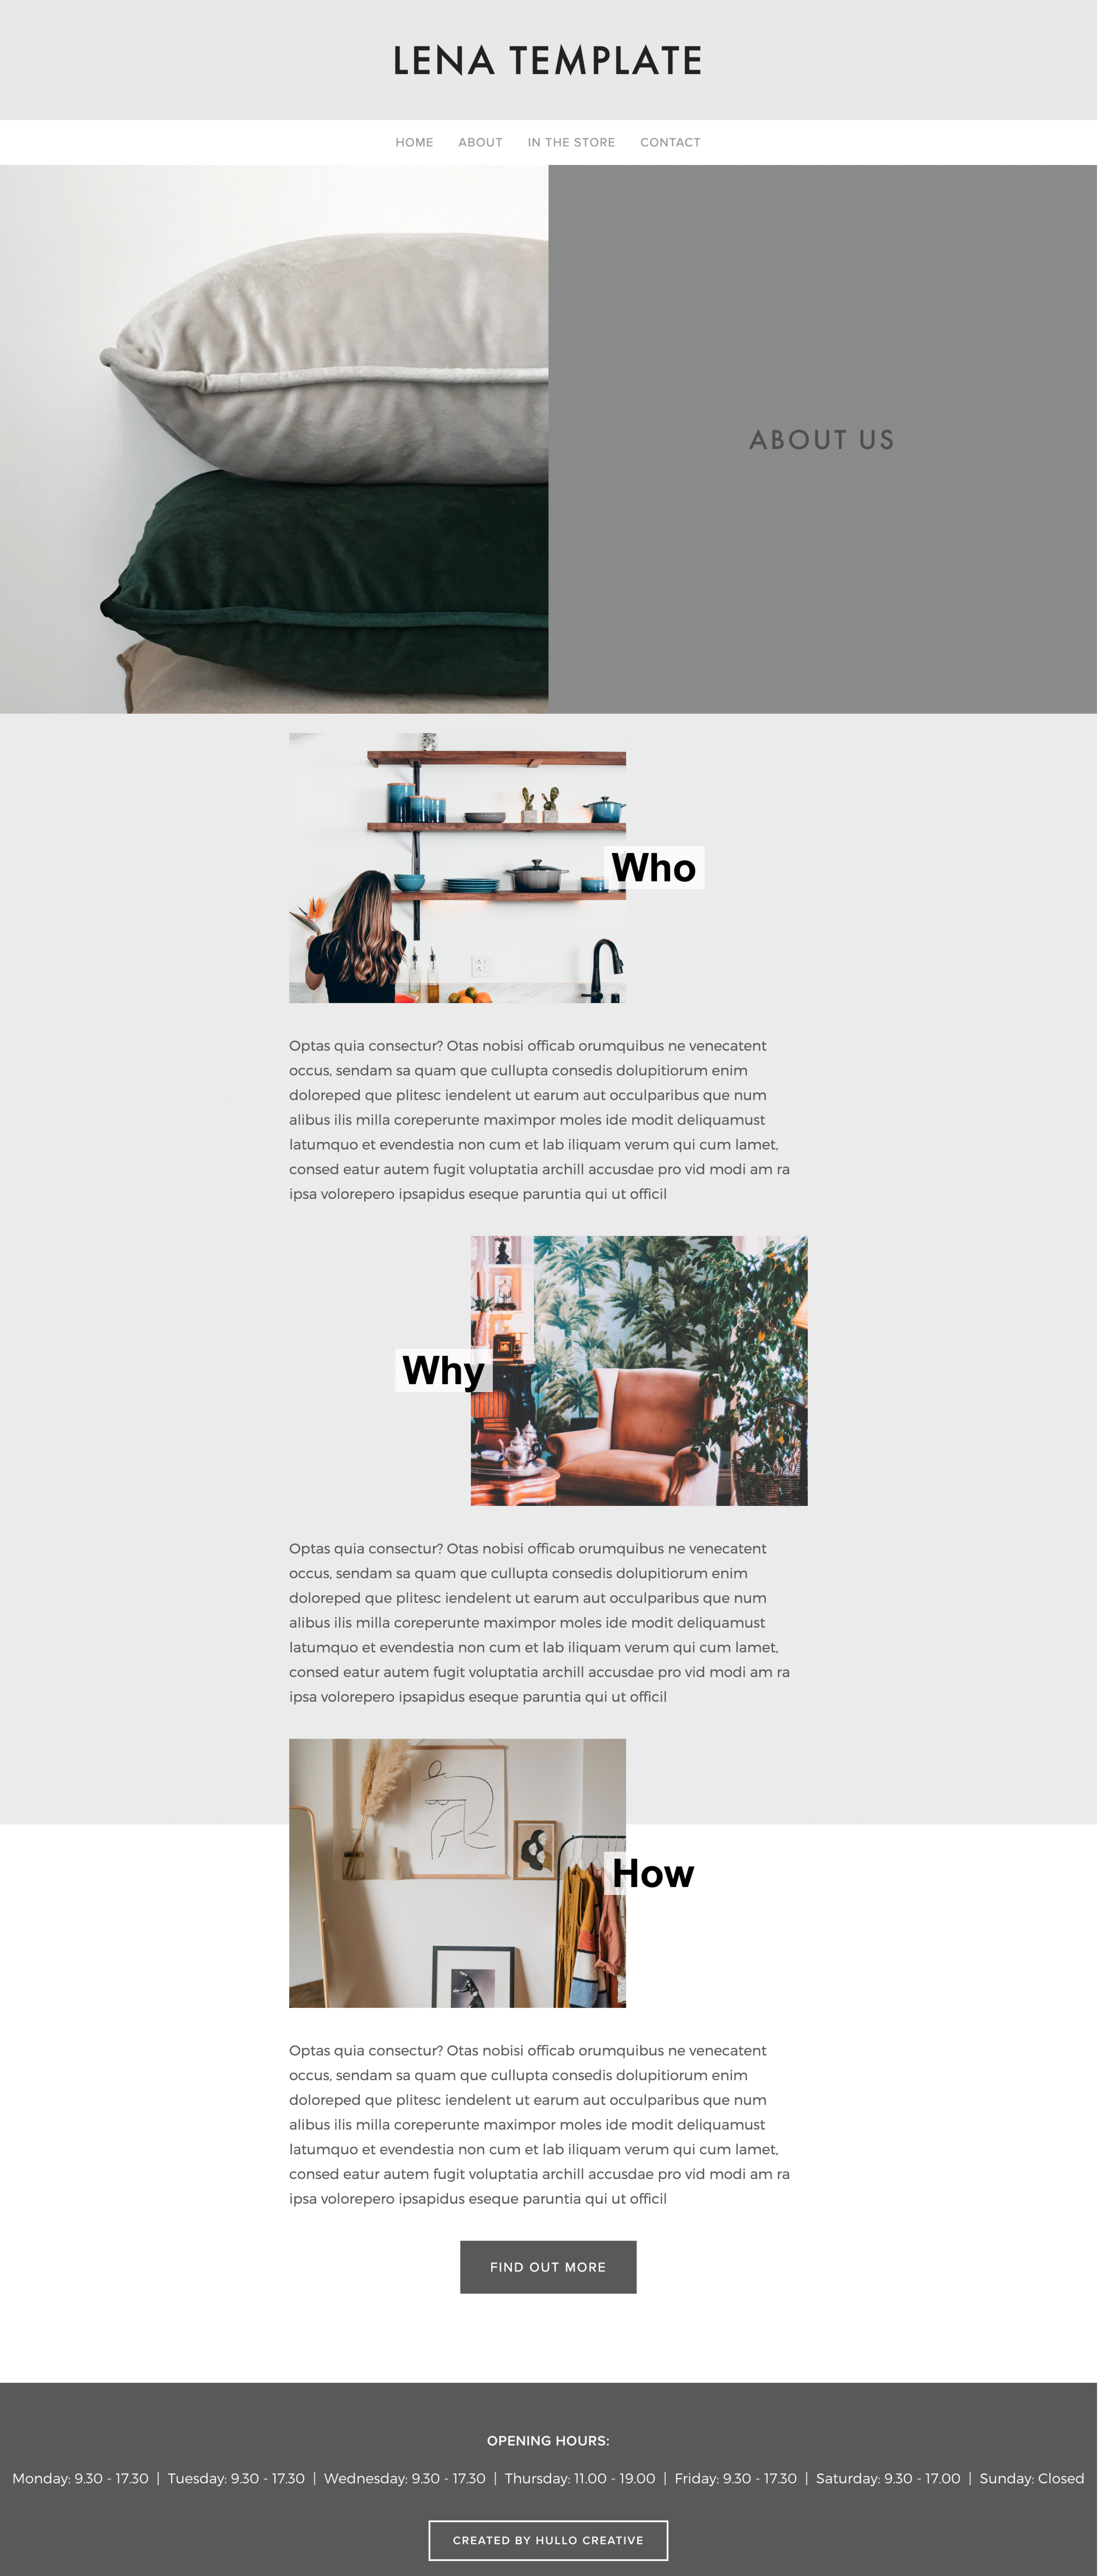 screencapture-lena-fulltemplate-squarespace-about-2019-07-30-08_49_47.png